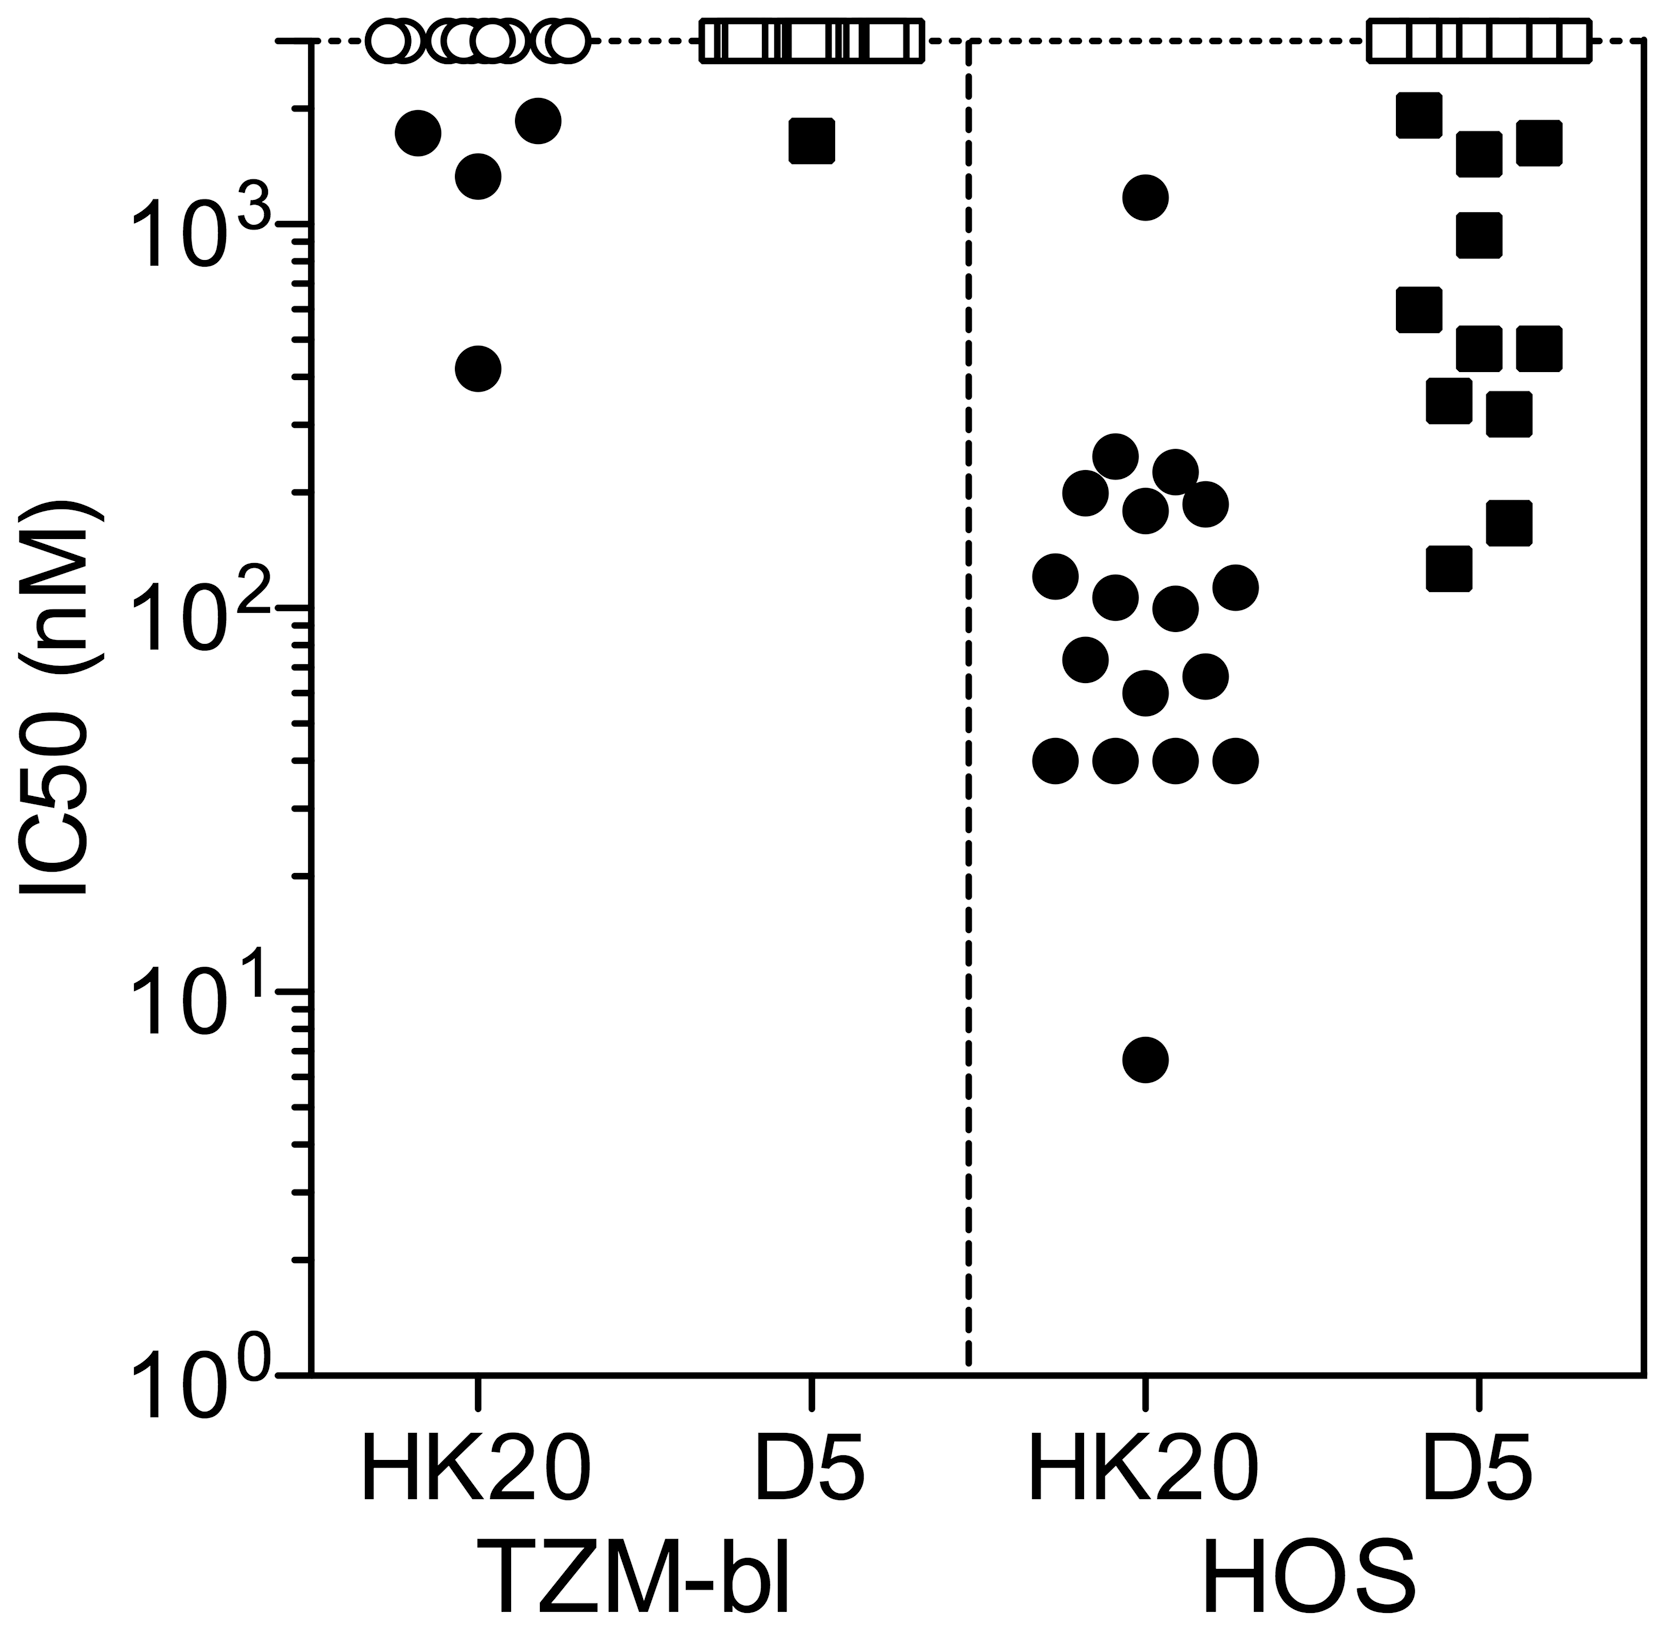 Comparison of HK20 IgG and D5 IgG in TZM-bl and HOS-based neutralization assays.